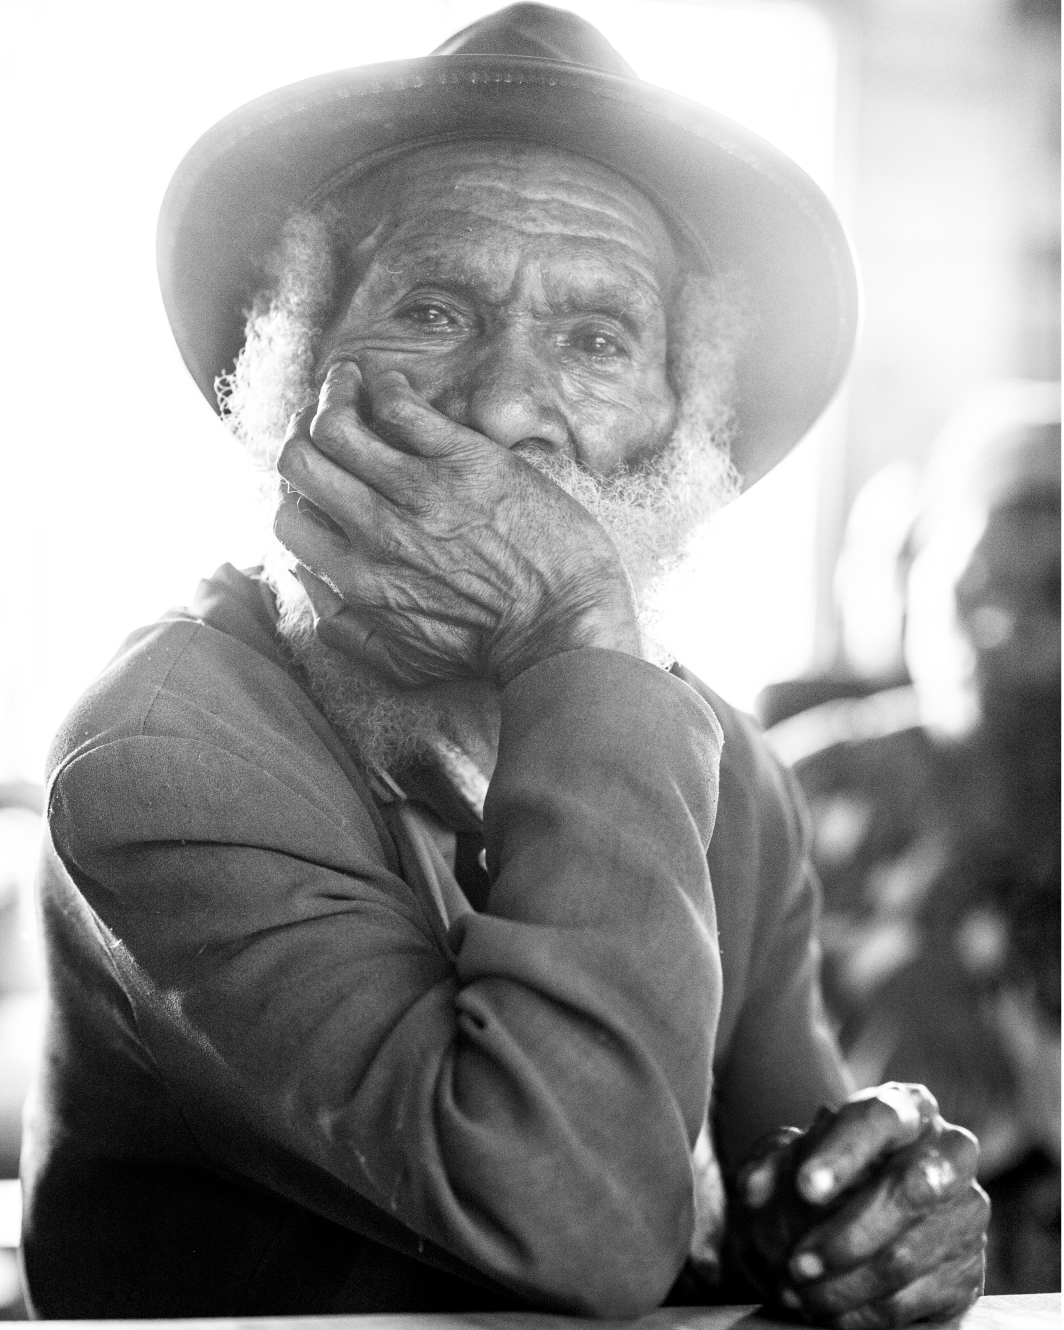 A tribal elder in rural Enga Provence, Papua New Guinea.  Sitting for hours listening to external monitors discussing the future of his children education.